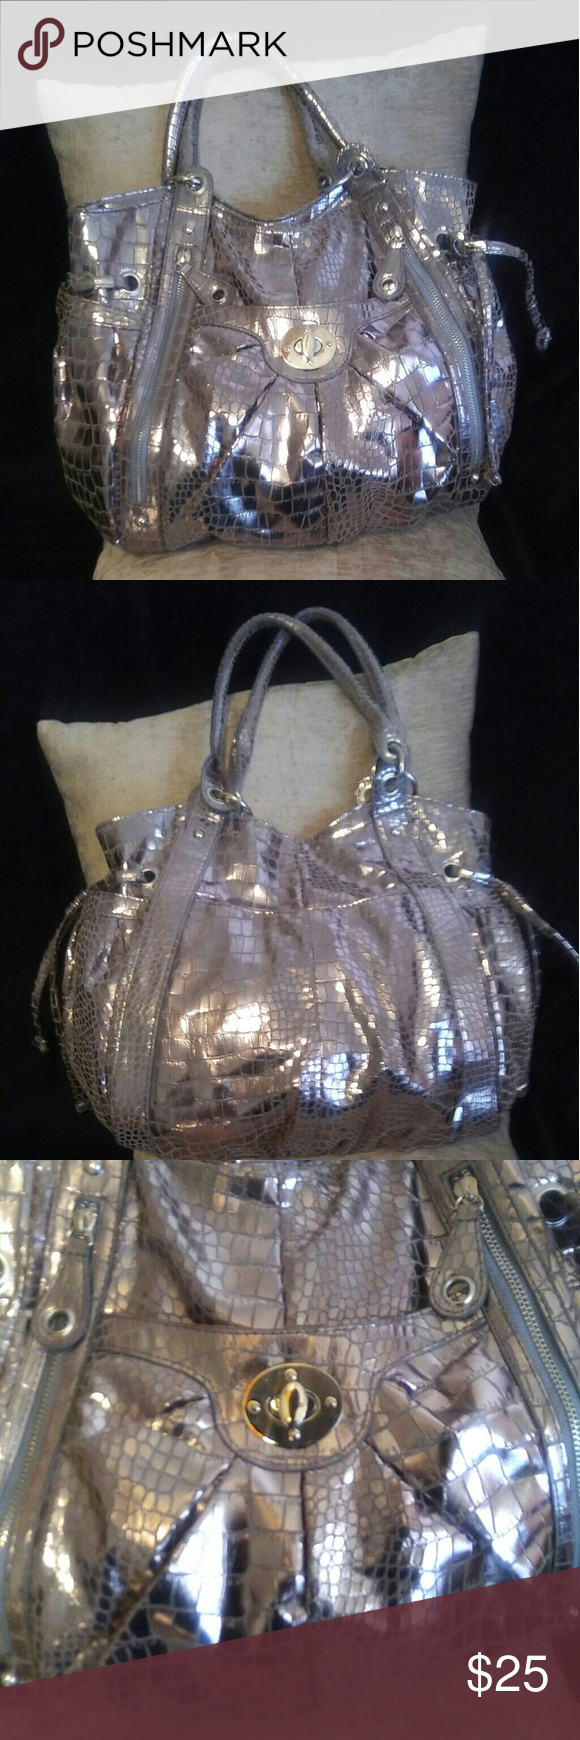 Metallic Braciano Handbag The Perfect Tote Ious With 3compartments Inside Plenty Of Hideaway Pockets Bags Totes